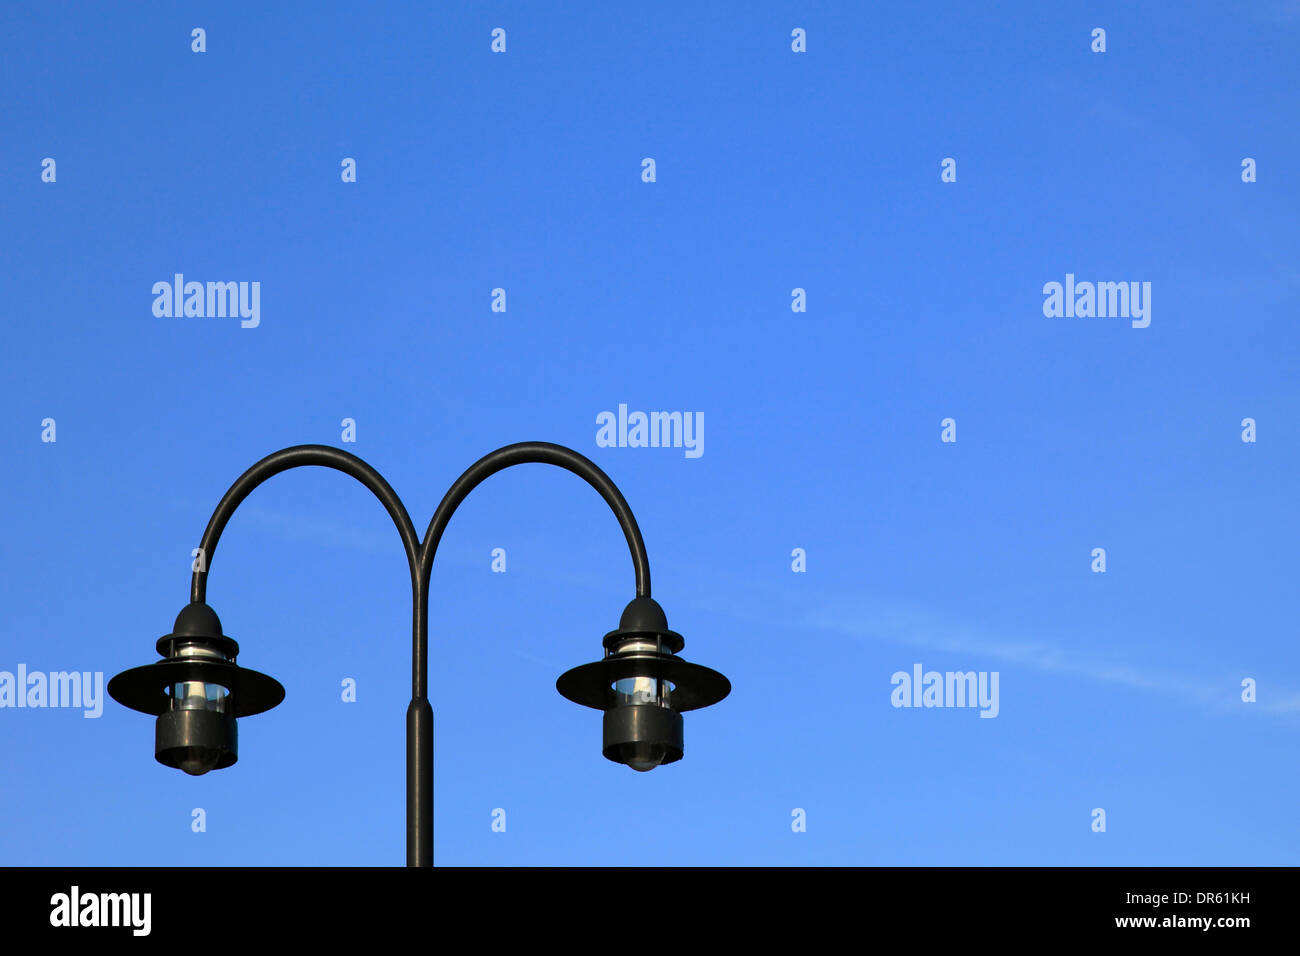 Modern street lamps against blue sky Stock Photo, Royalty Free ... for Modern Street Lamps  289hul